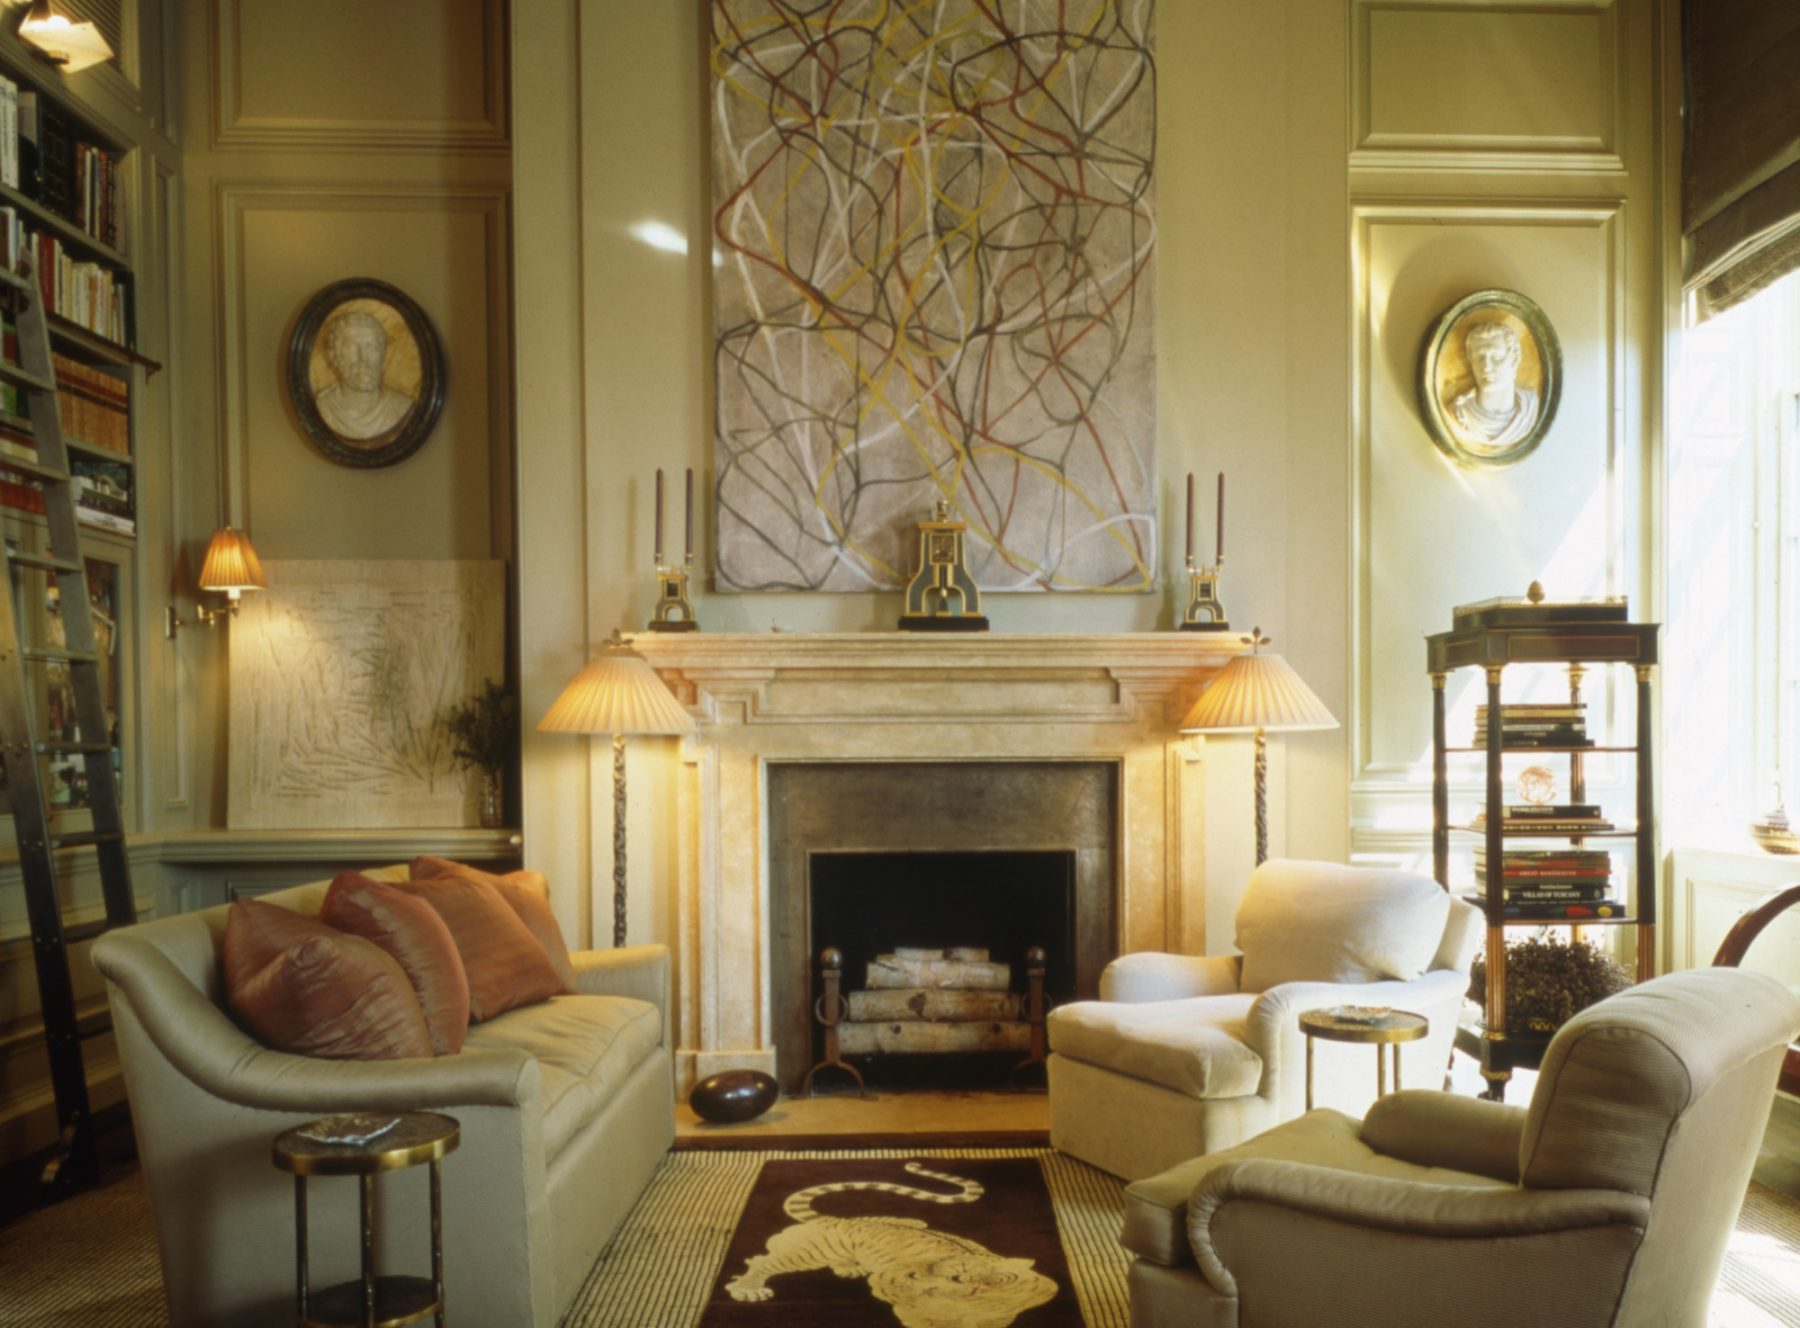 Upper east side new york apartment bunny williams - Interior design firms nyc ...